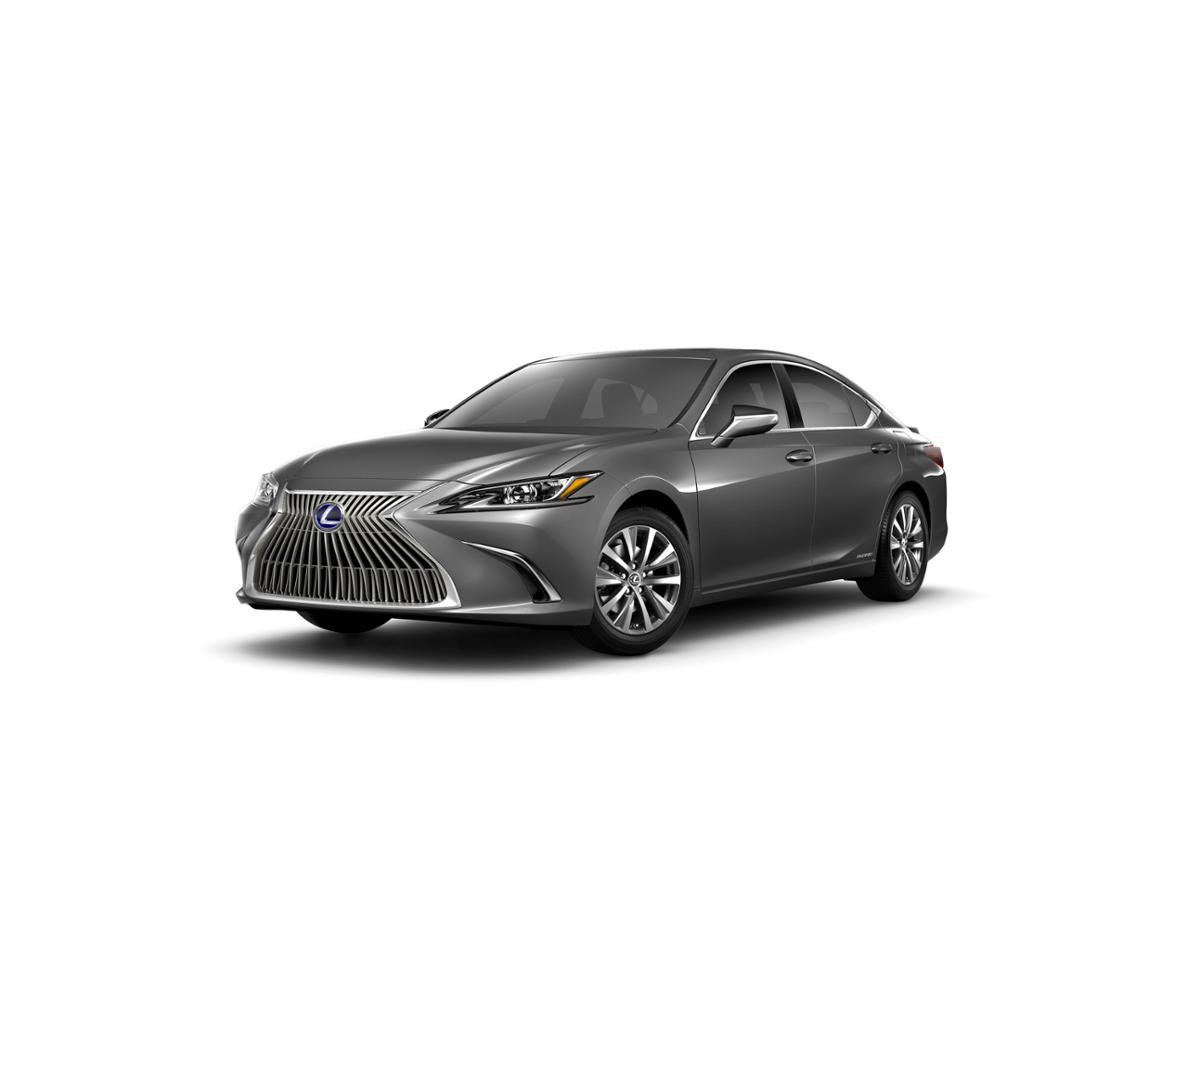 2019 Lexus ES 300h Vehicle Photo in Torrance, CA 90505